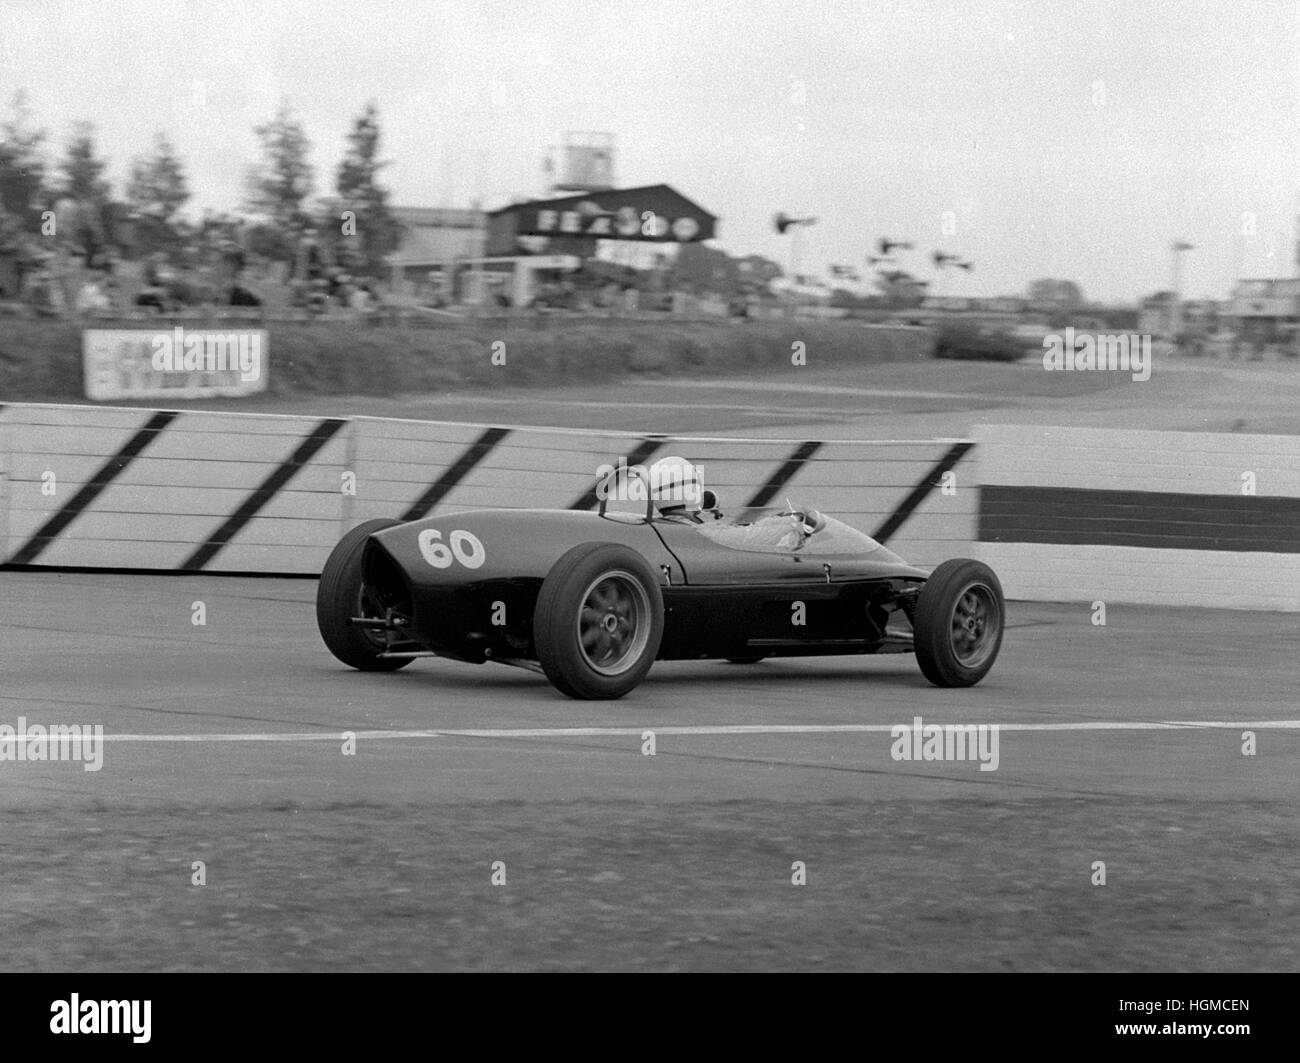 Lola-Ford, Bill McCowen Goodwood 10th June 1961 - Stock Image